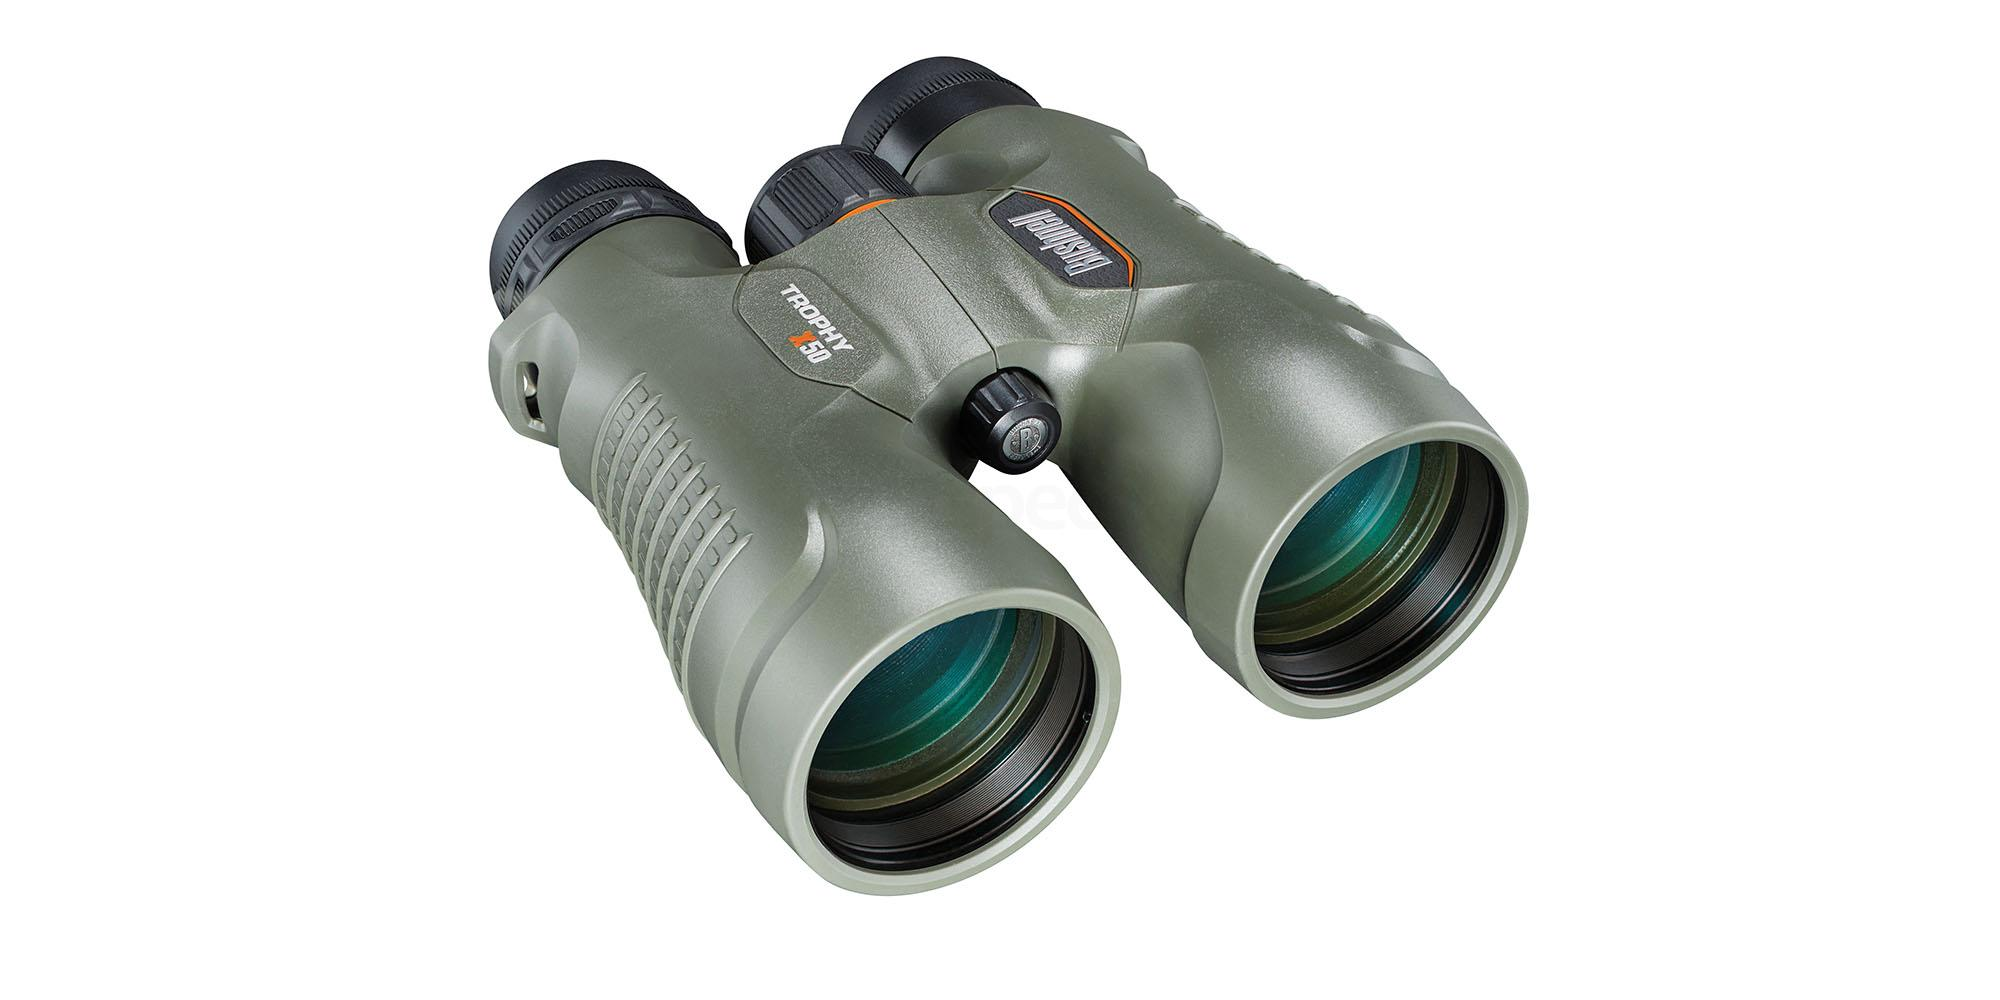 335105 BINOCULARS TROPHY XTREME Accessories, Bolle